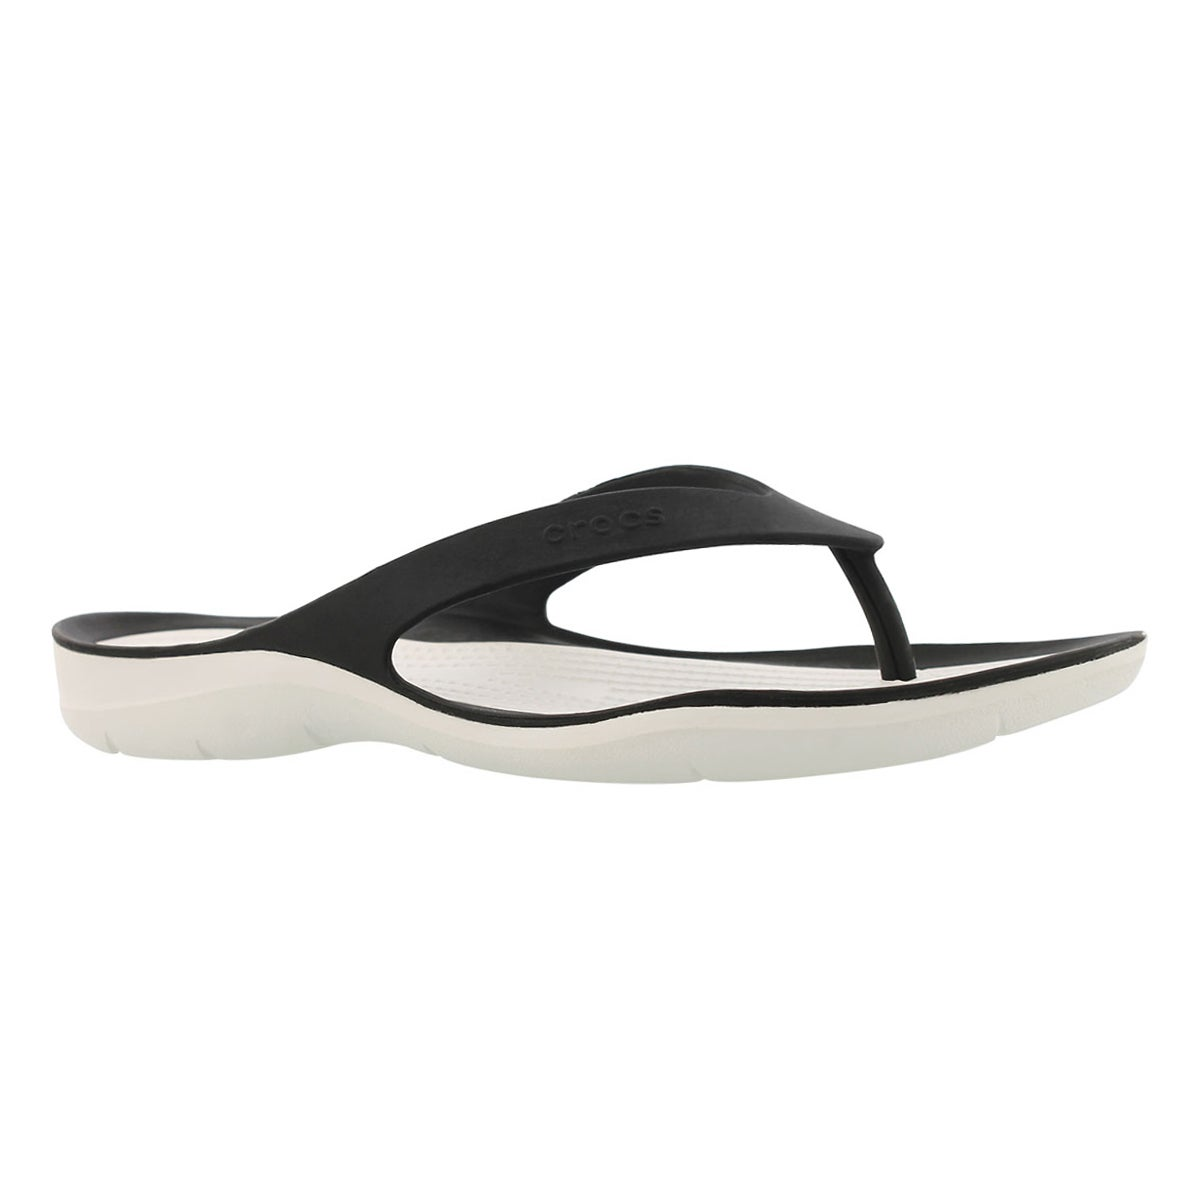 Lds Swiftwater Flip blk/wht thong sndl